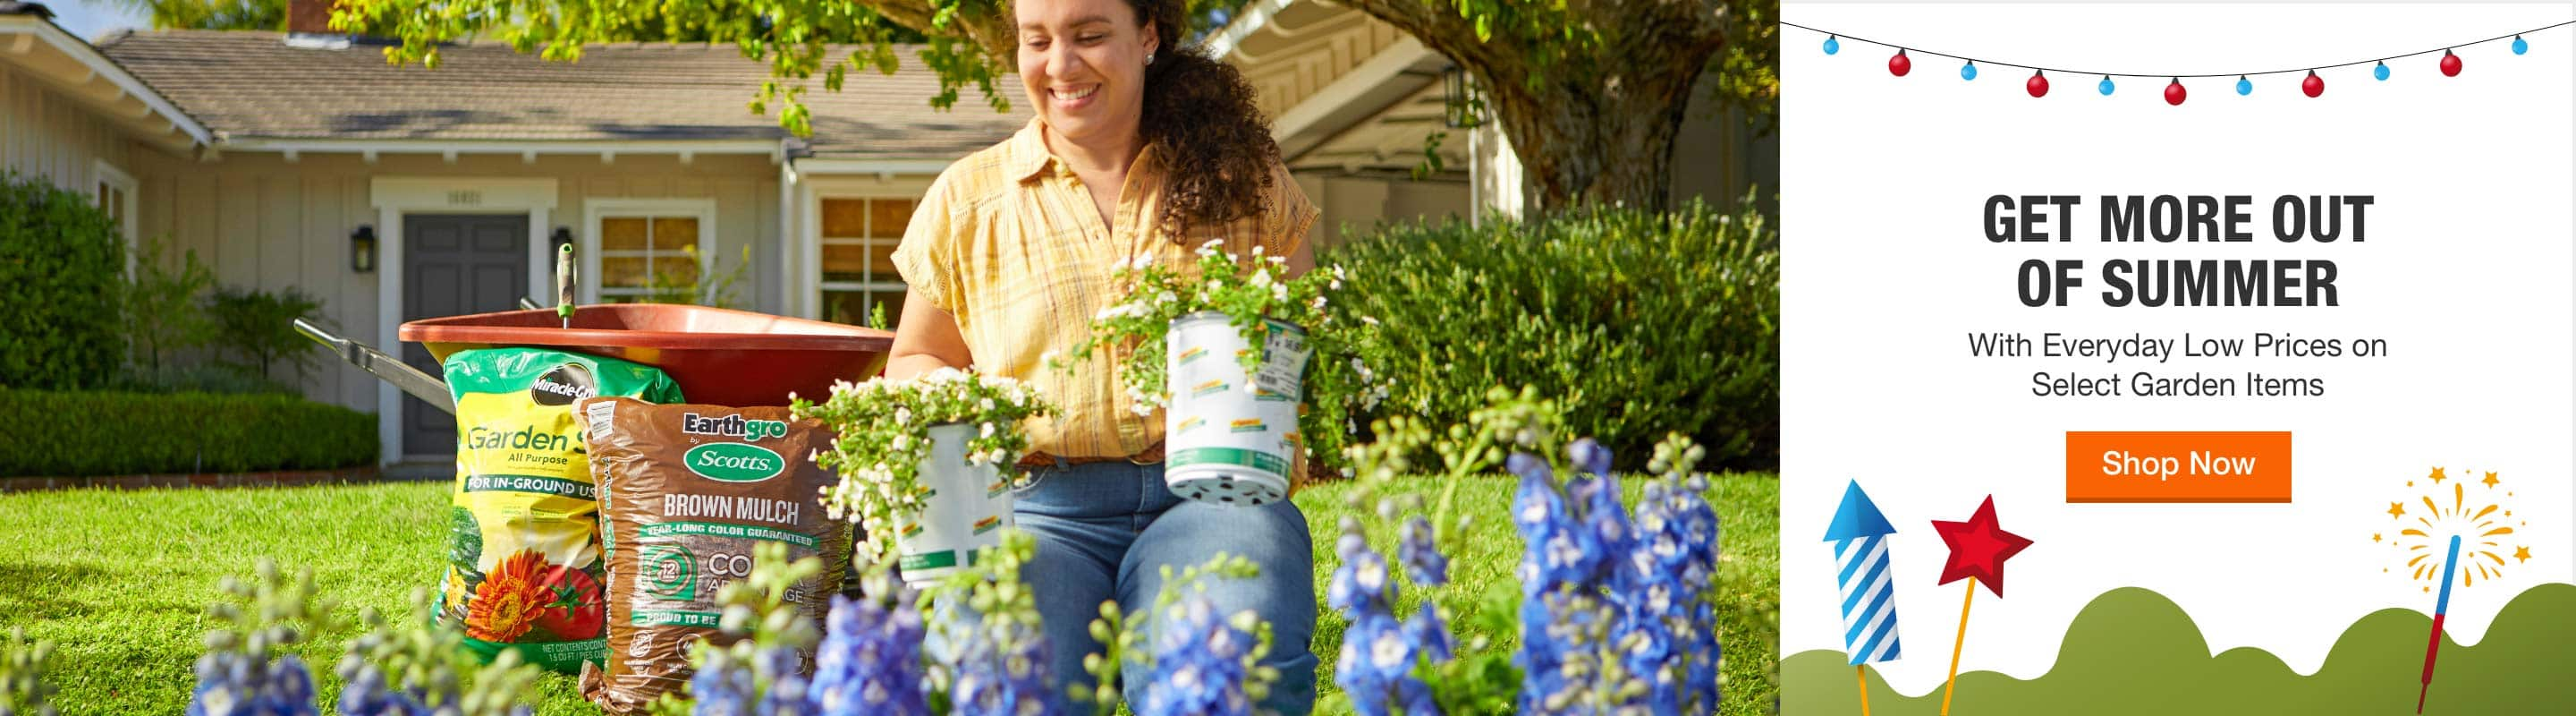 GET MORE OUT OF SUMMER With Everyday Low Prices on Select Garden Items. Shop Now